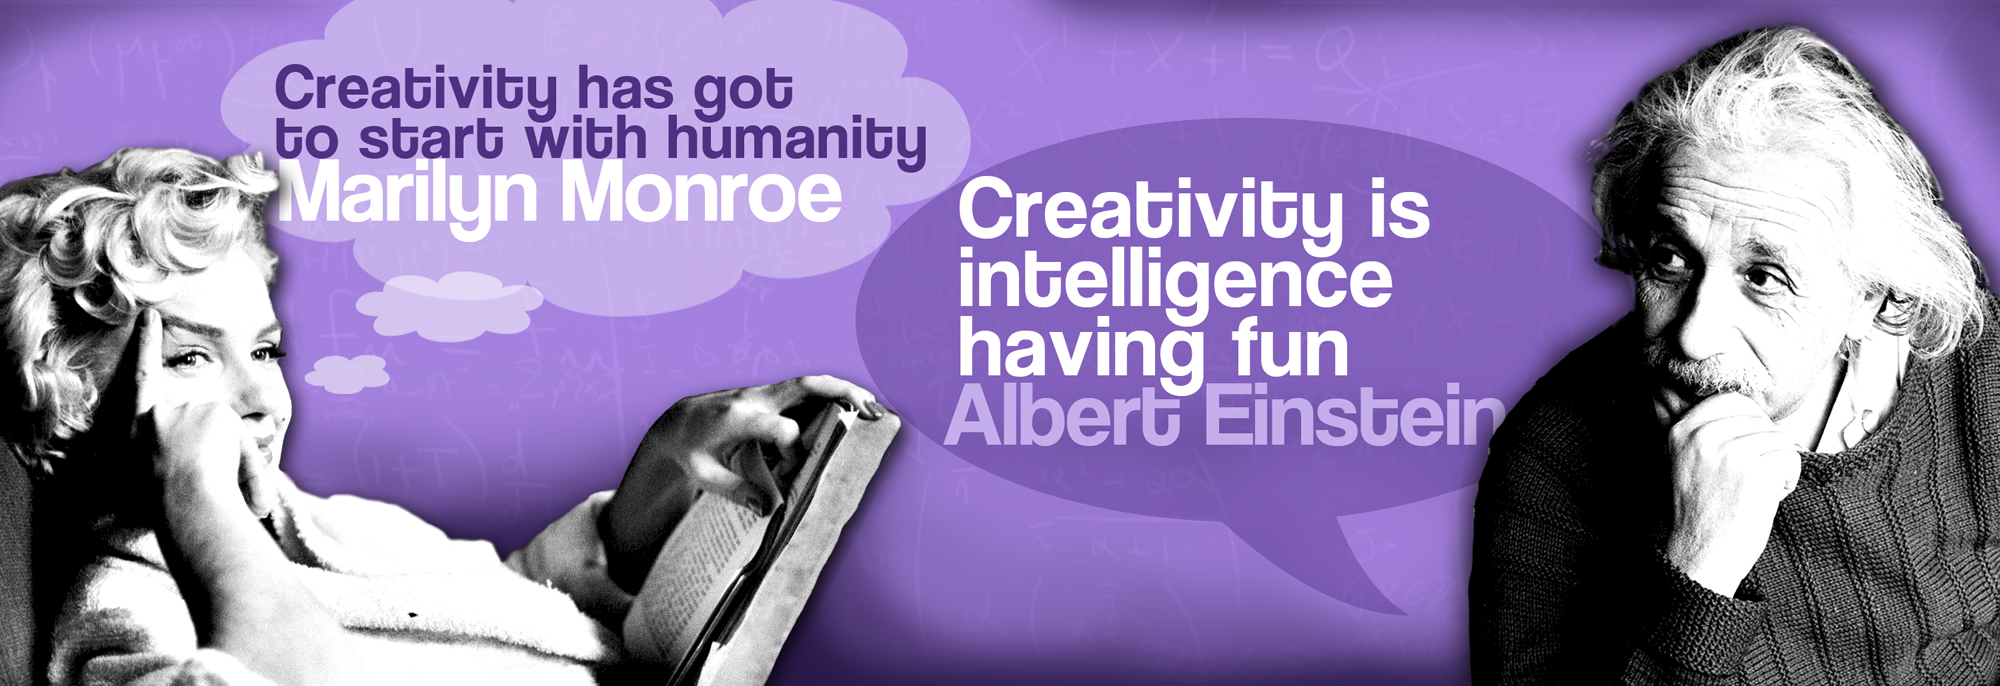 Creativity in Education - Albert Einstein and Marilyn Monroe